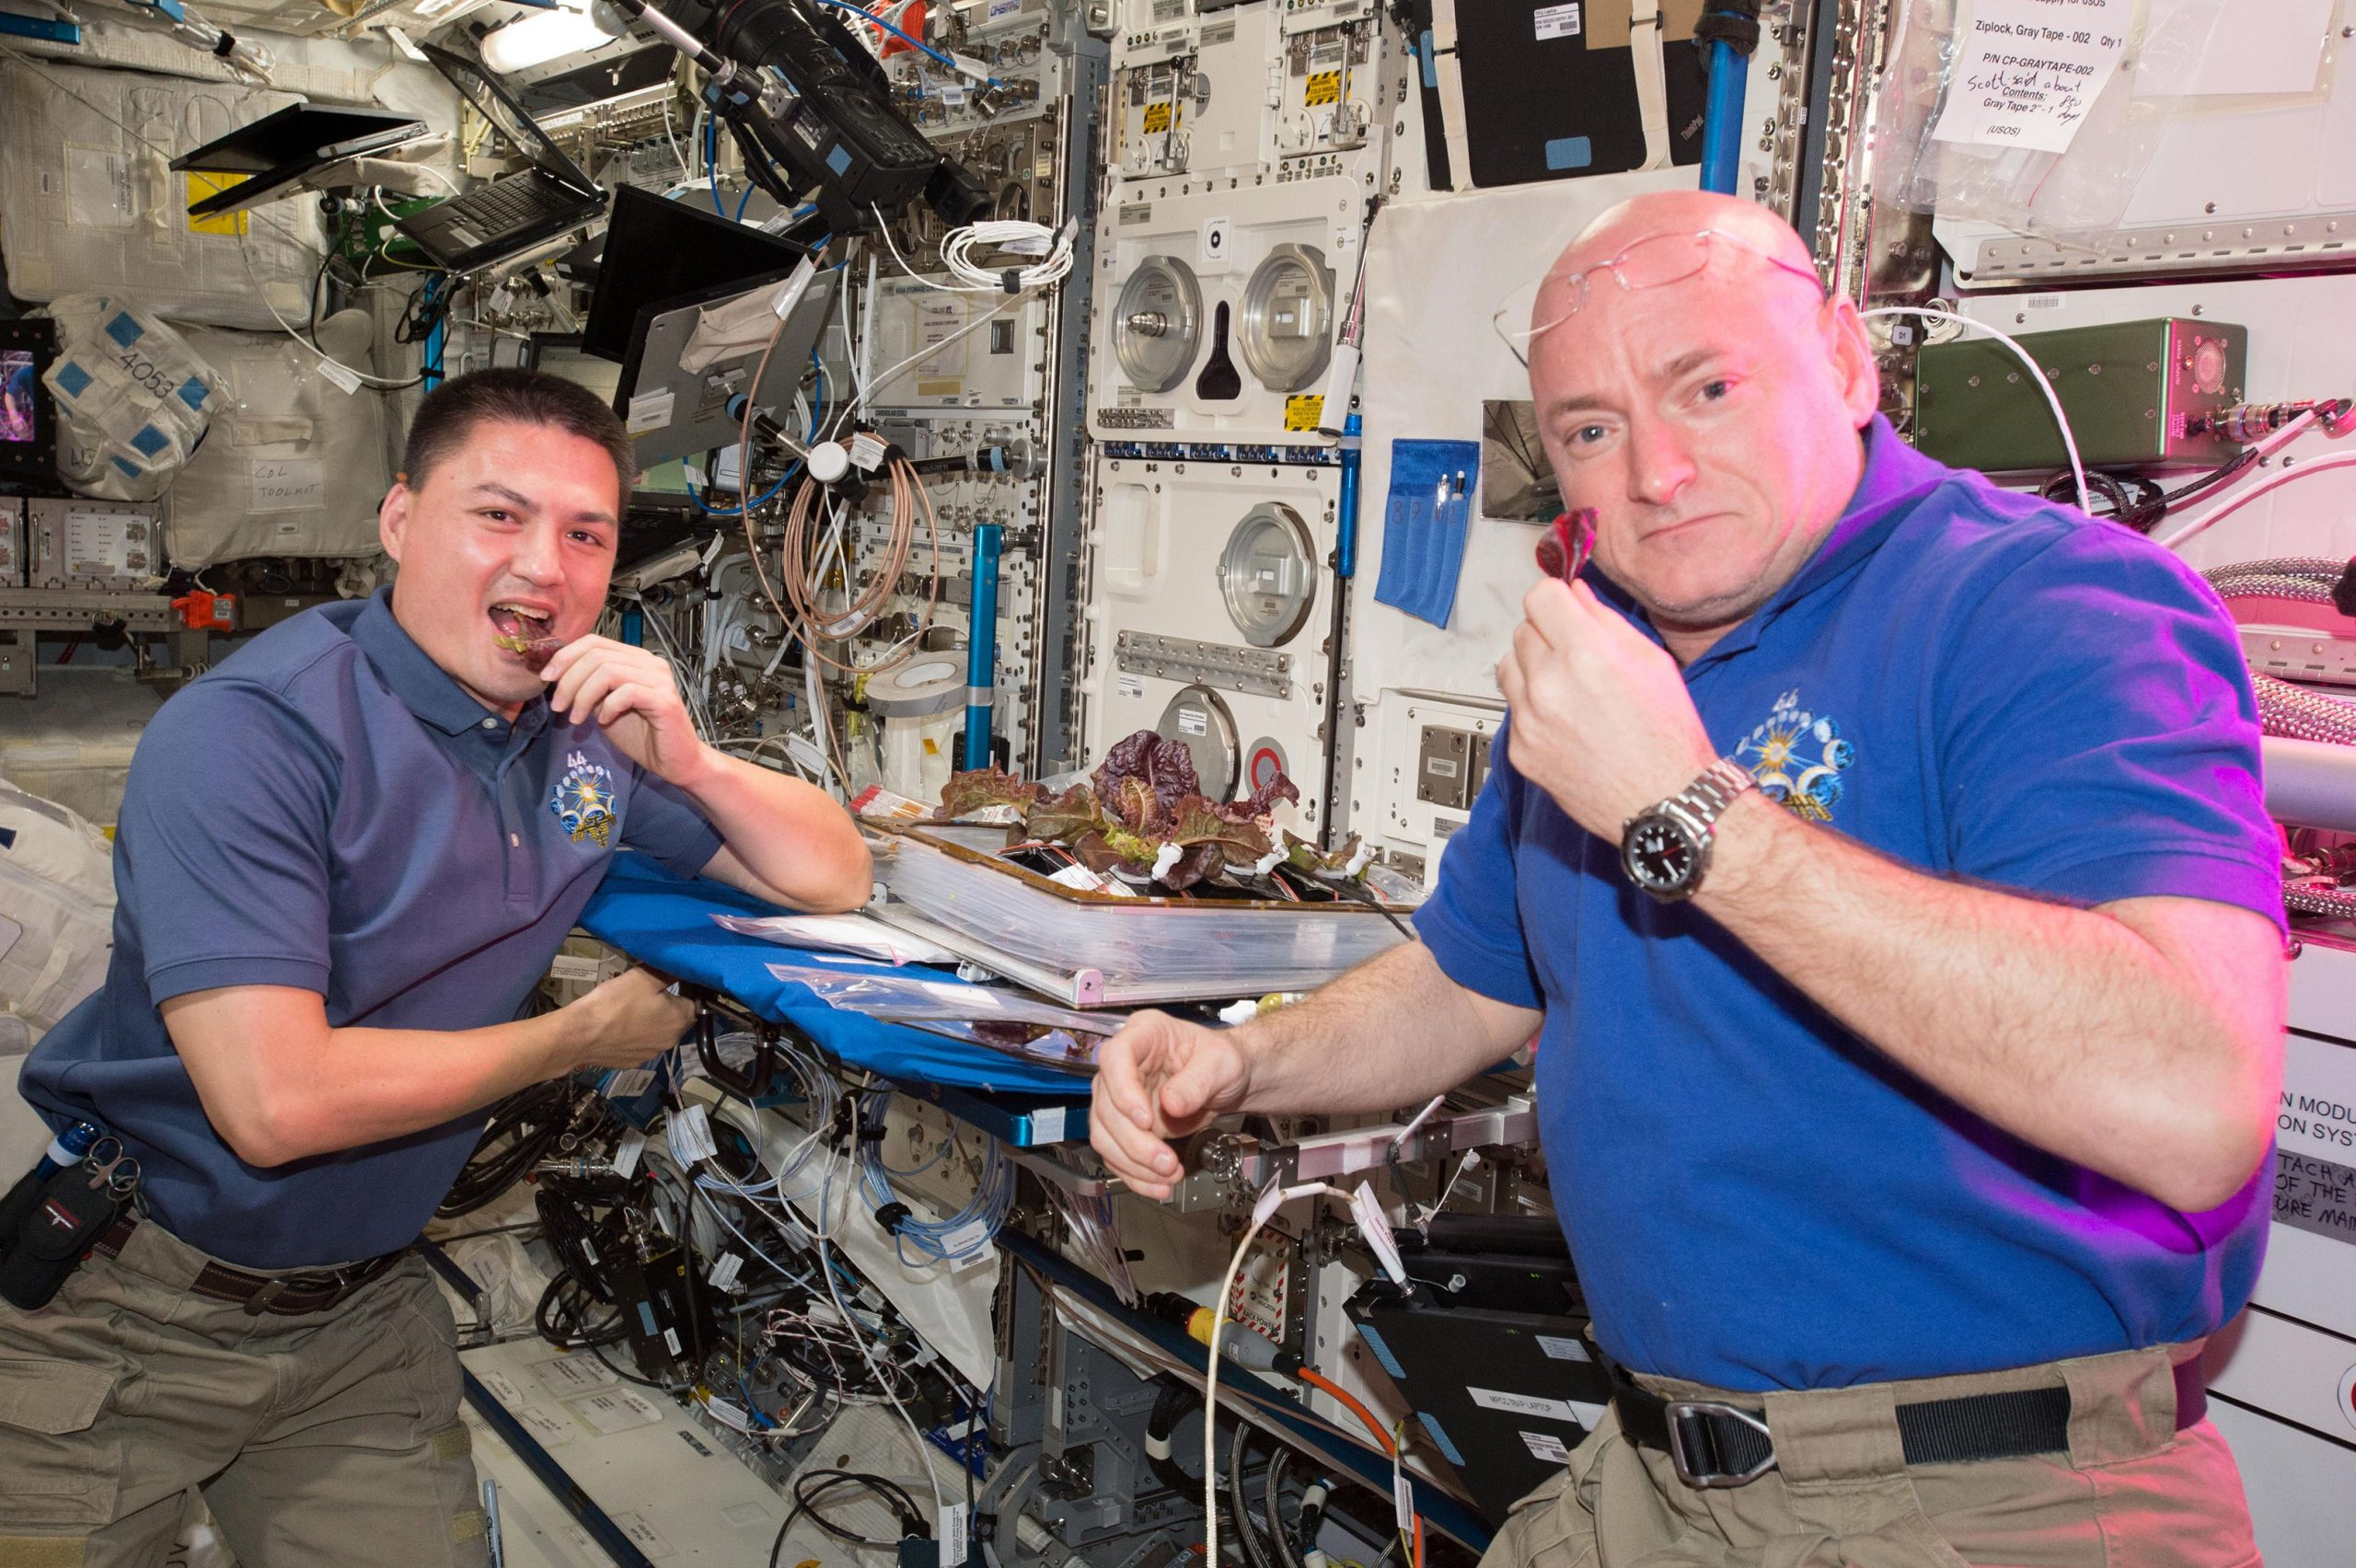 The International Space Station has 2 seats left for this trip